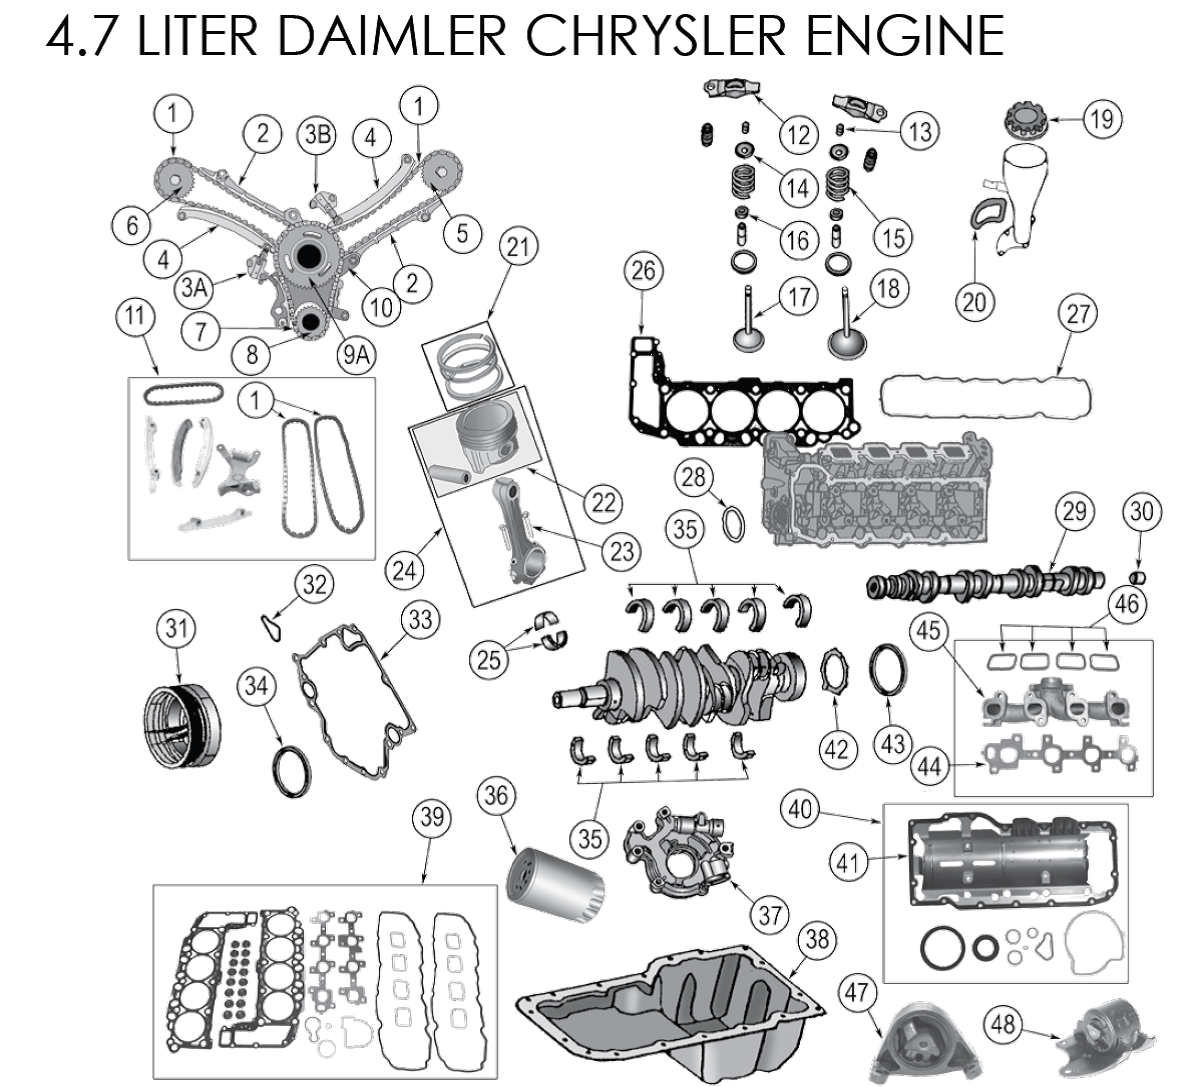 2005 Jeep Grand Cherokee Fuse B Wiring Diagram And Box Liberty 3 7 Engine Wrangler Further For 2008 Besides Sterling